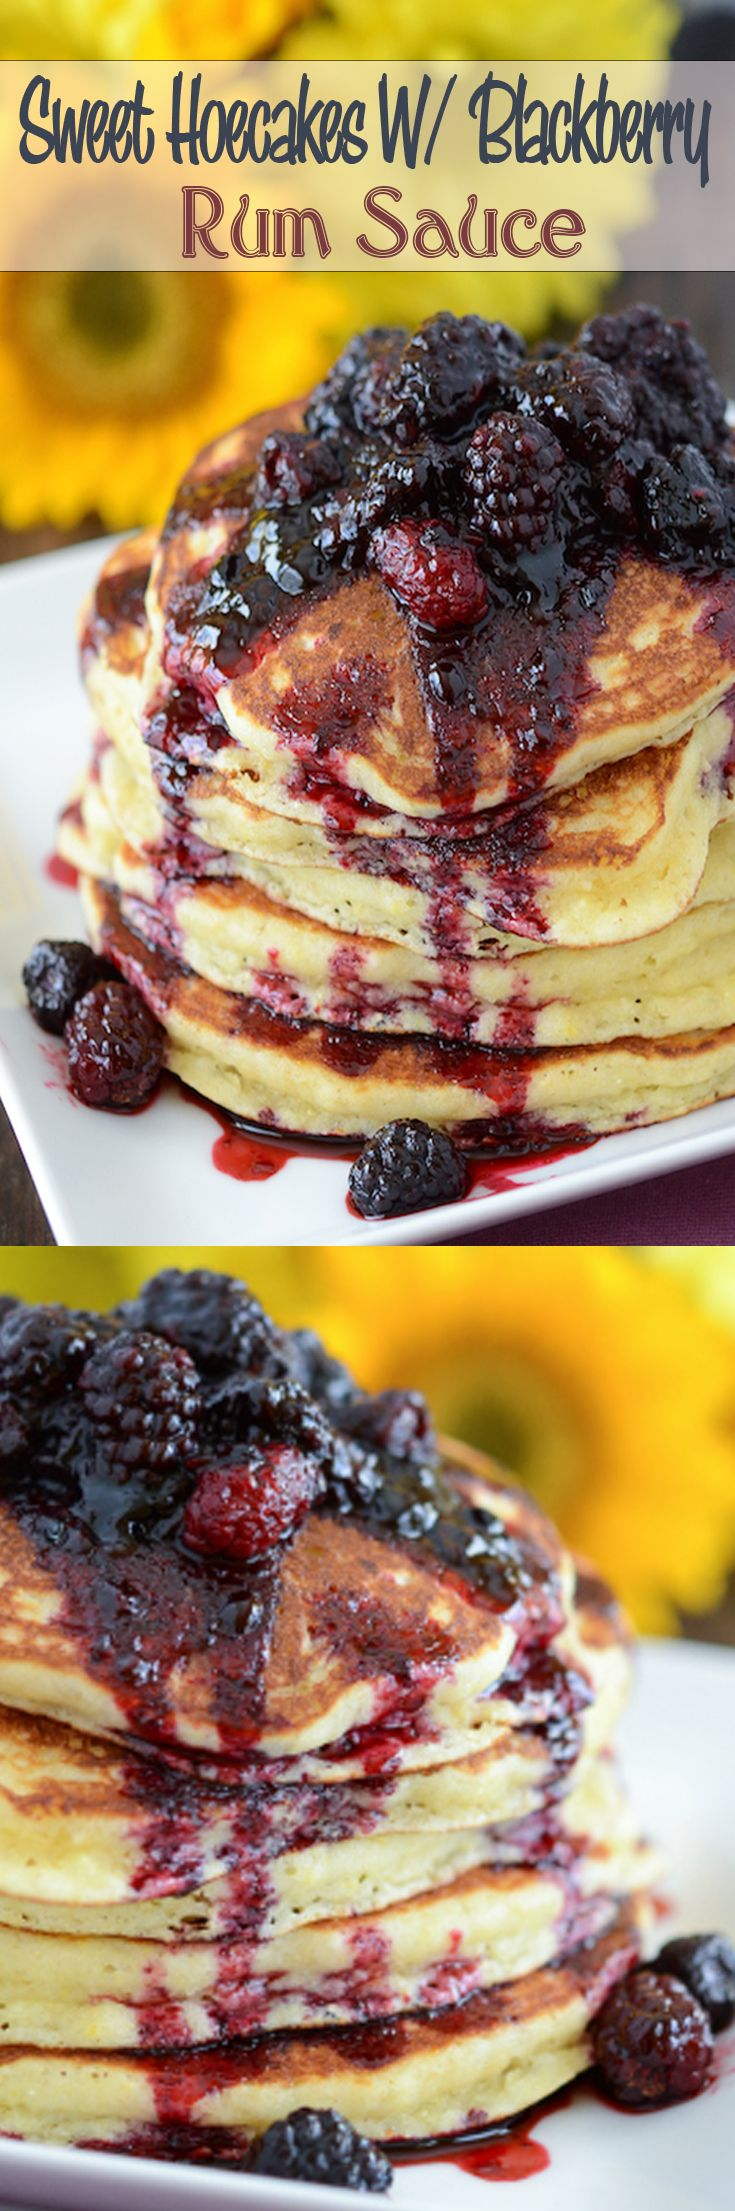 Sweet Hoecakes W/ Blackberry Rum Sauce - not sure what a hoe cake is but it has run in it and a cool name so figured we needed them on our boozy brunch menu